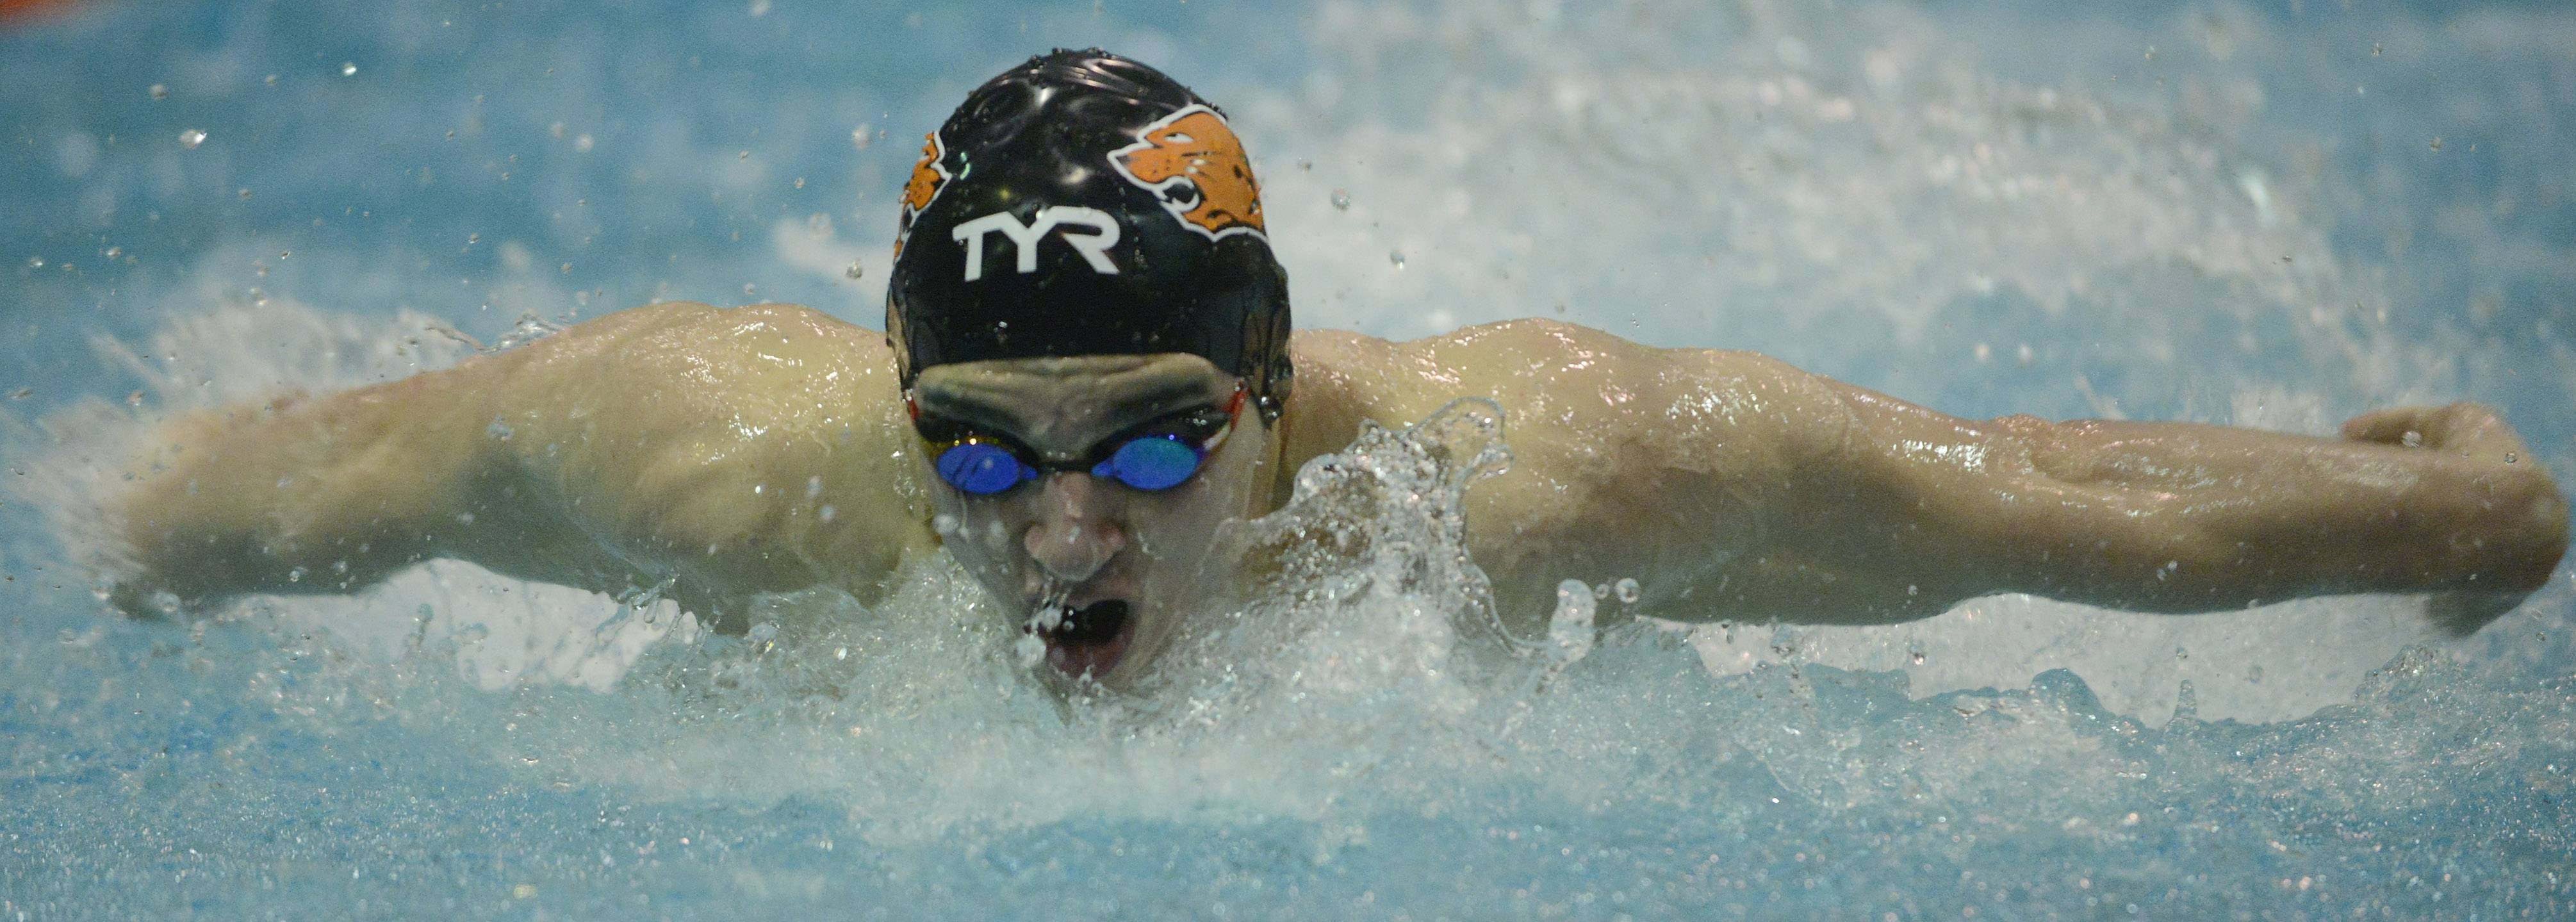 Libertyville's Matt Harrington swims the 100-yard butterfly during the boys swimming state meet finals at Evanston High School on Saturday.